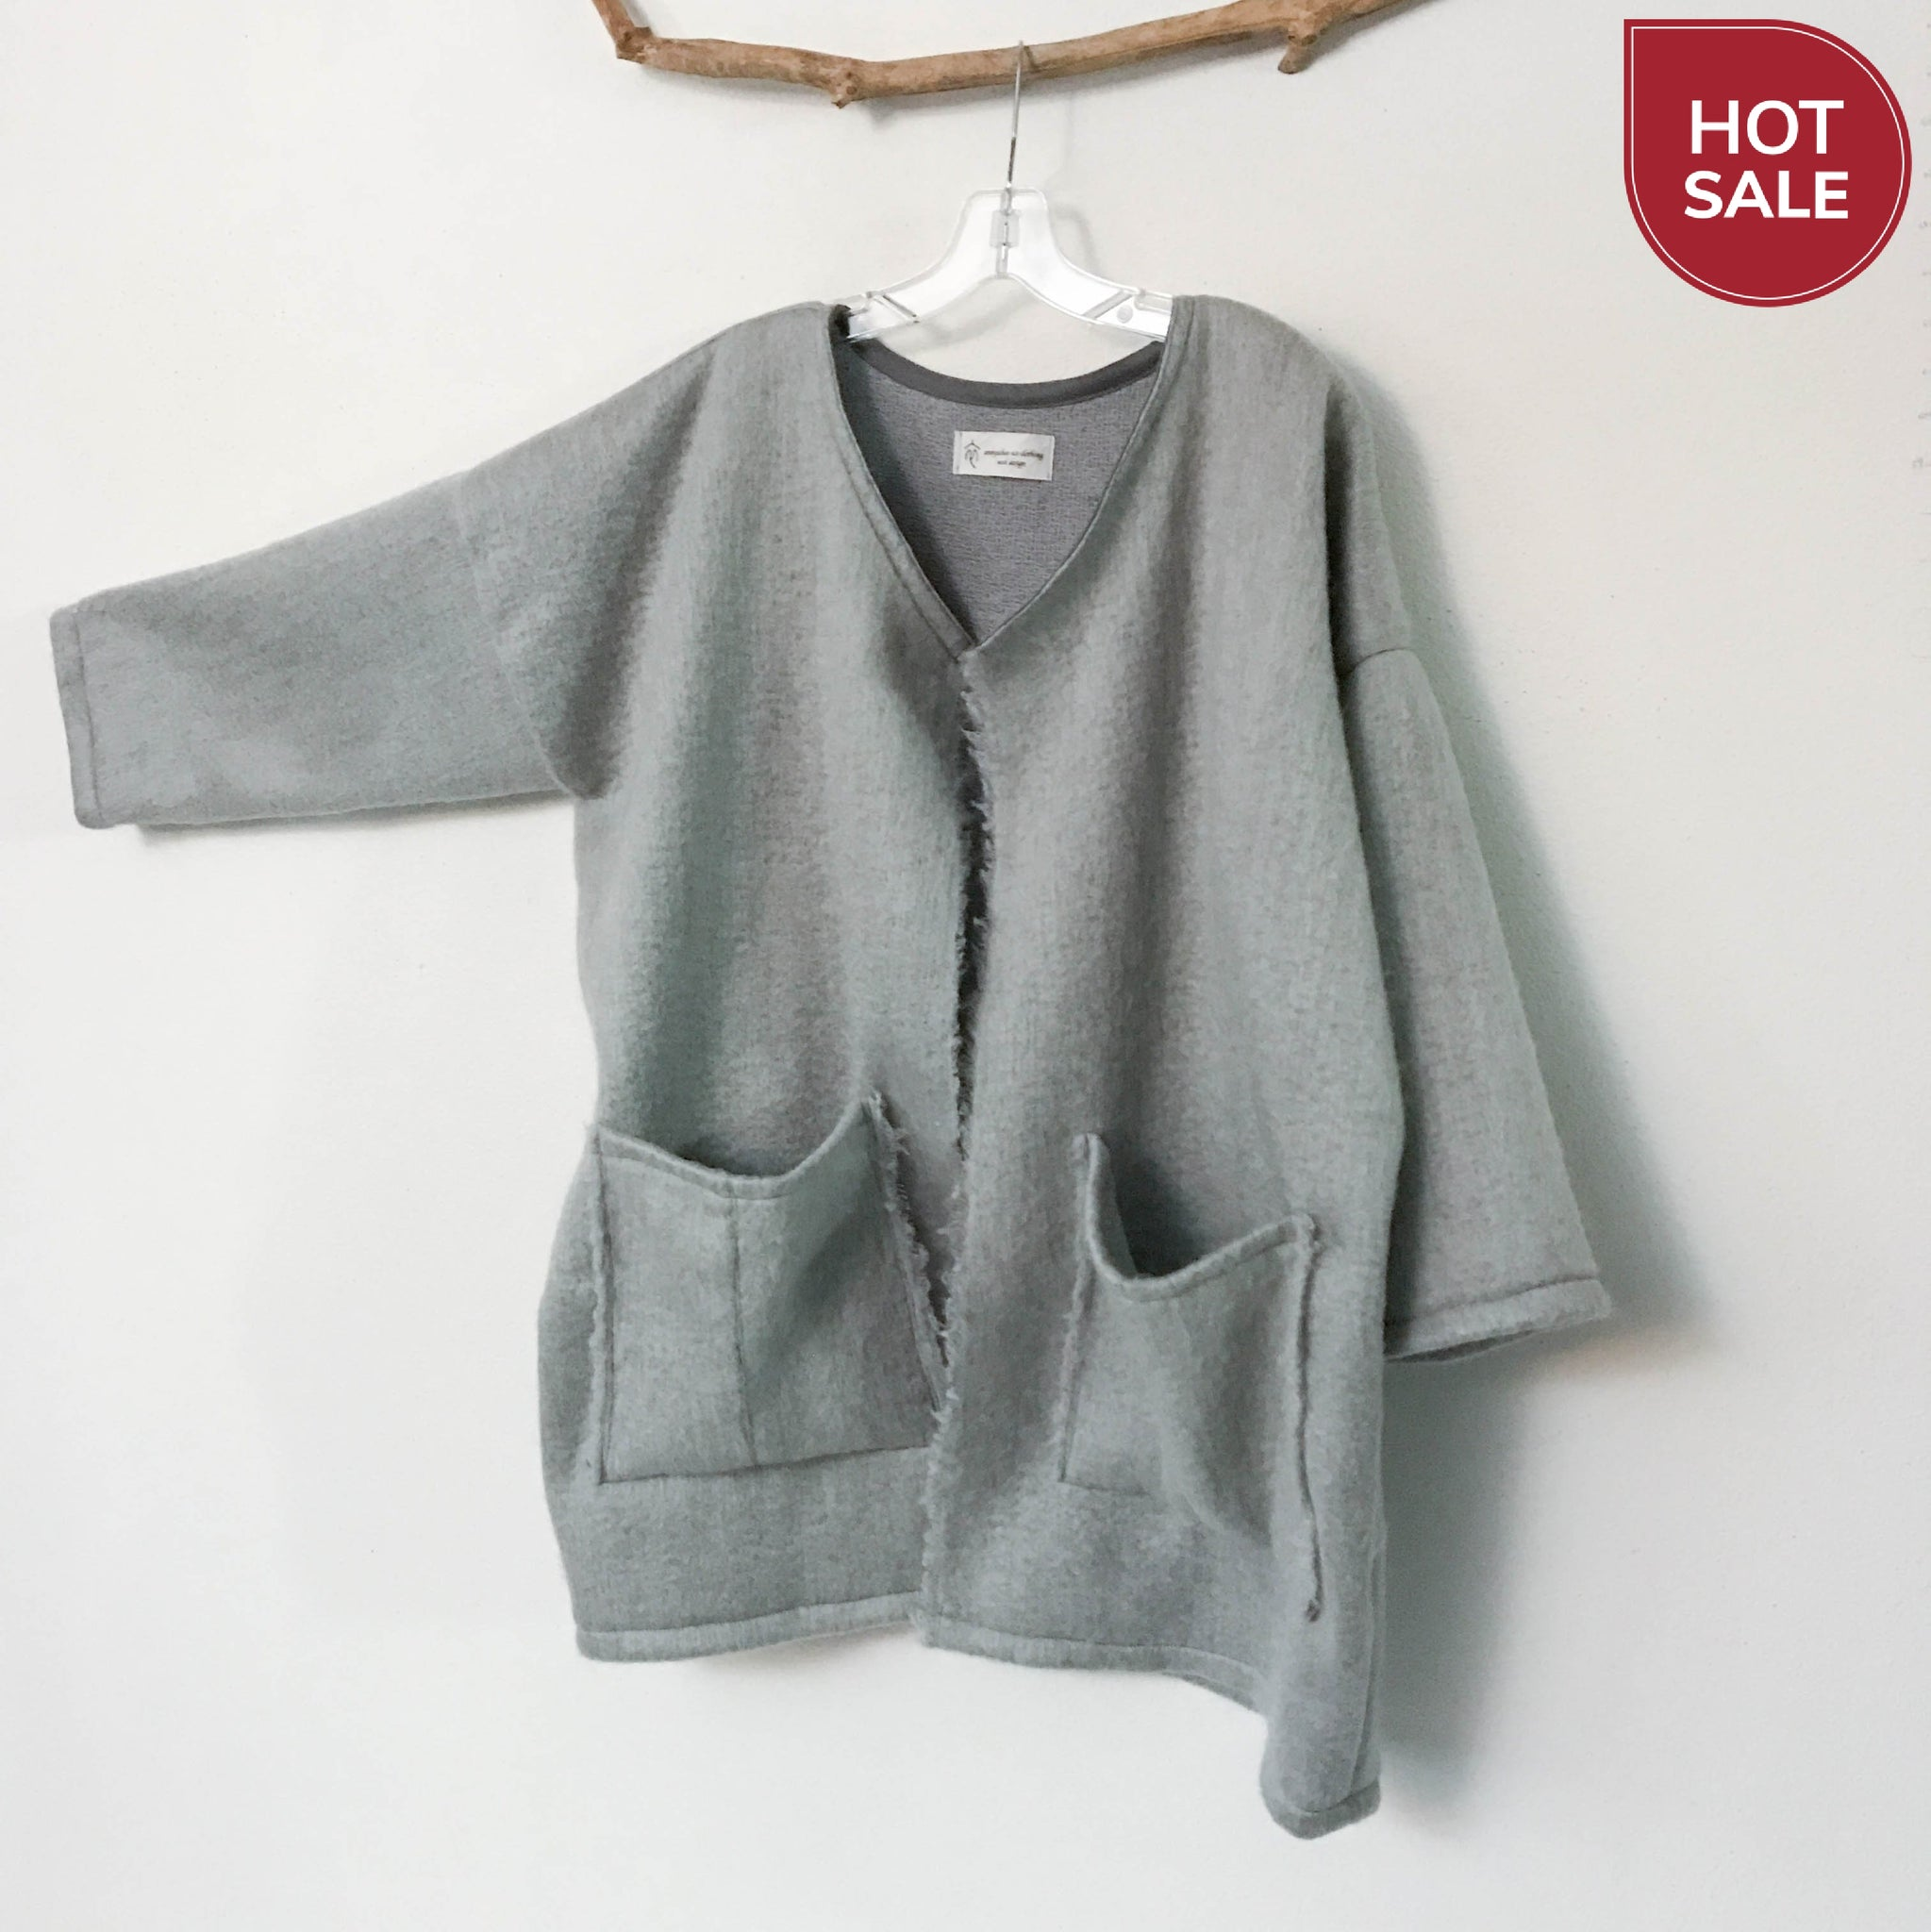 ready to wear oversized light gray brushed fur wool coat jacket with two pockets- linen clothing by anny